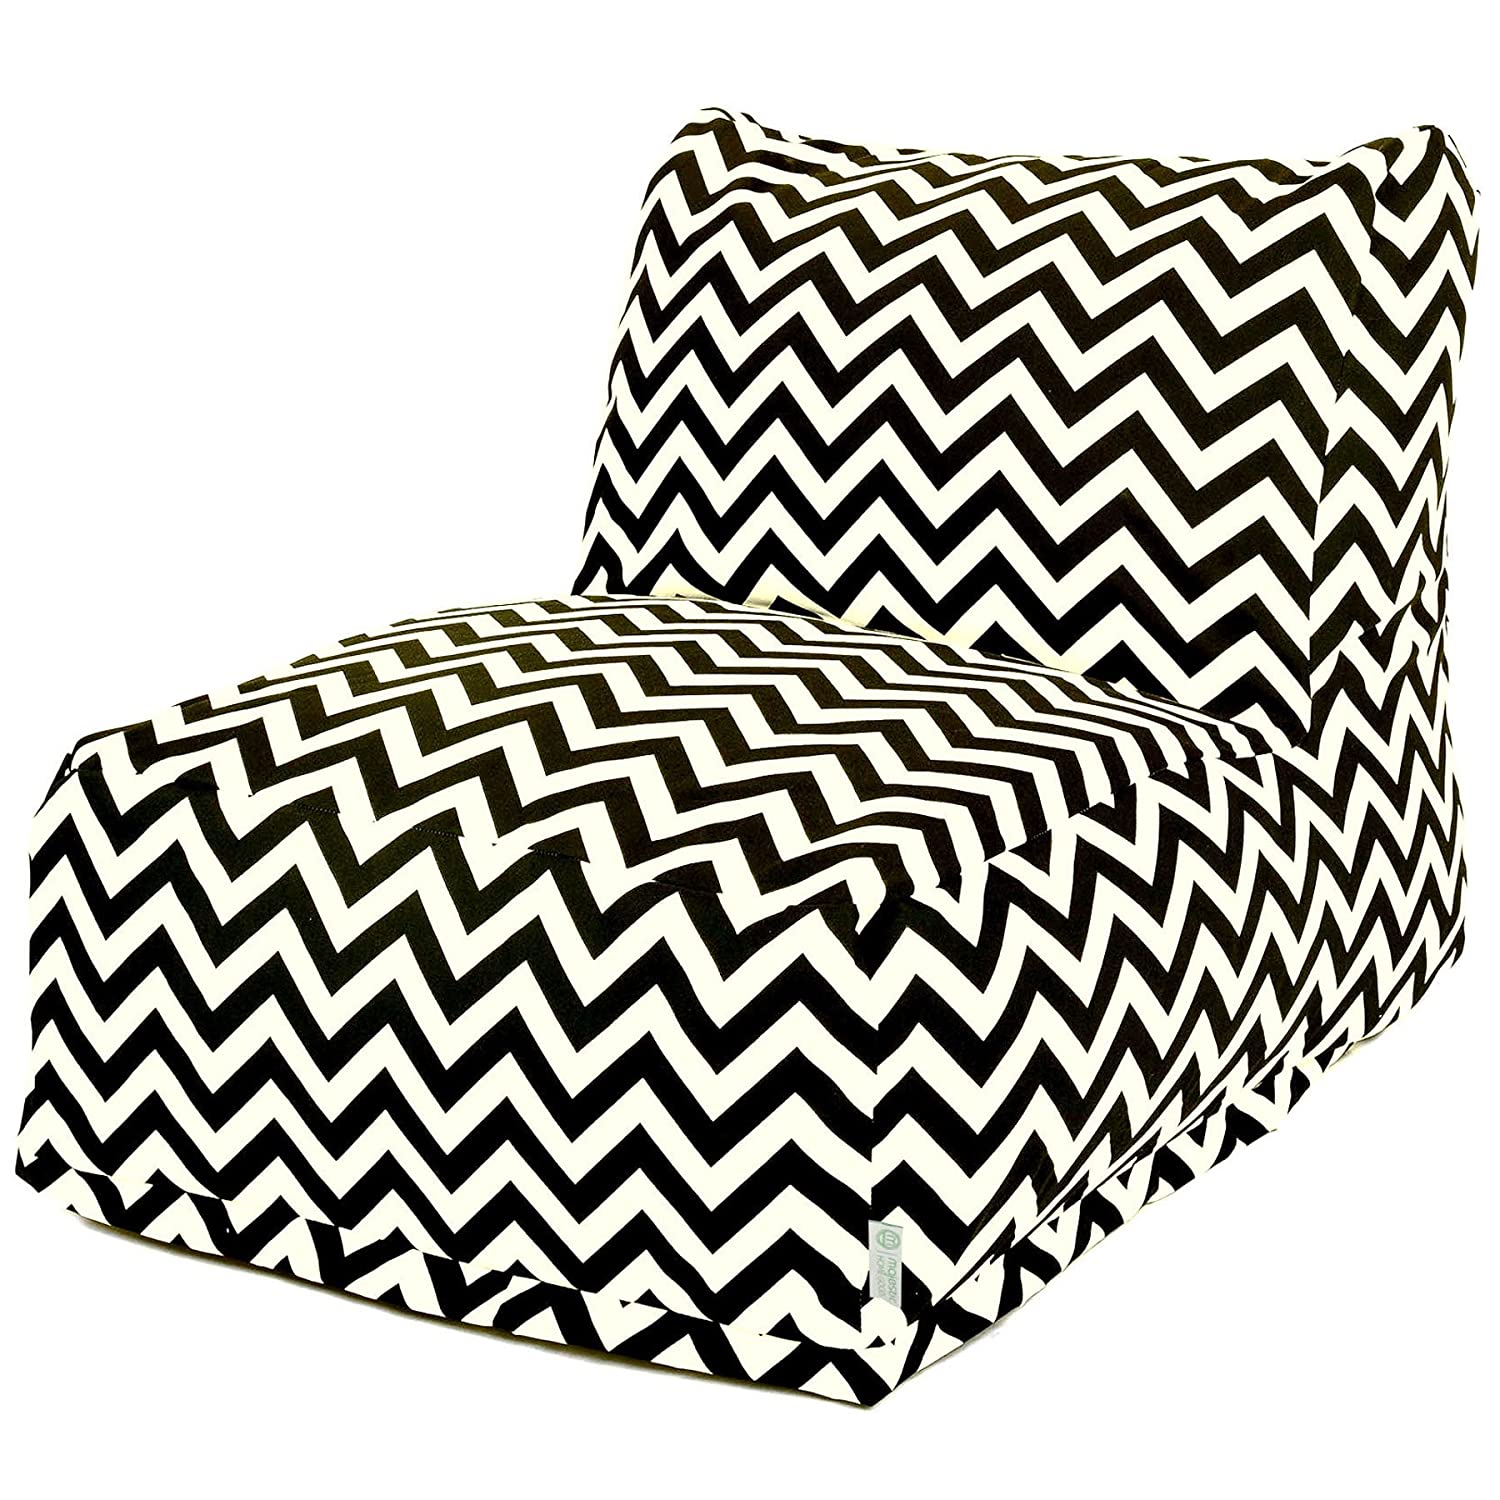 Groovy Majestic Home Goods Black Zig Zag Bean Bag Chair Lounger Machost Co Dining Chair Design Ideas Machostcouk